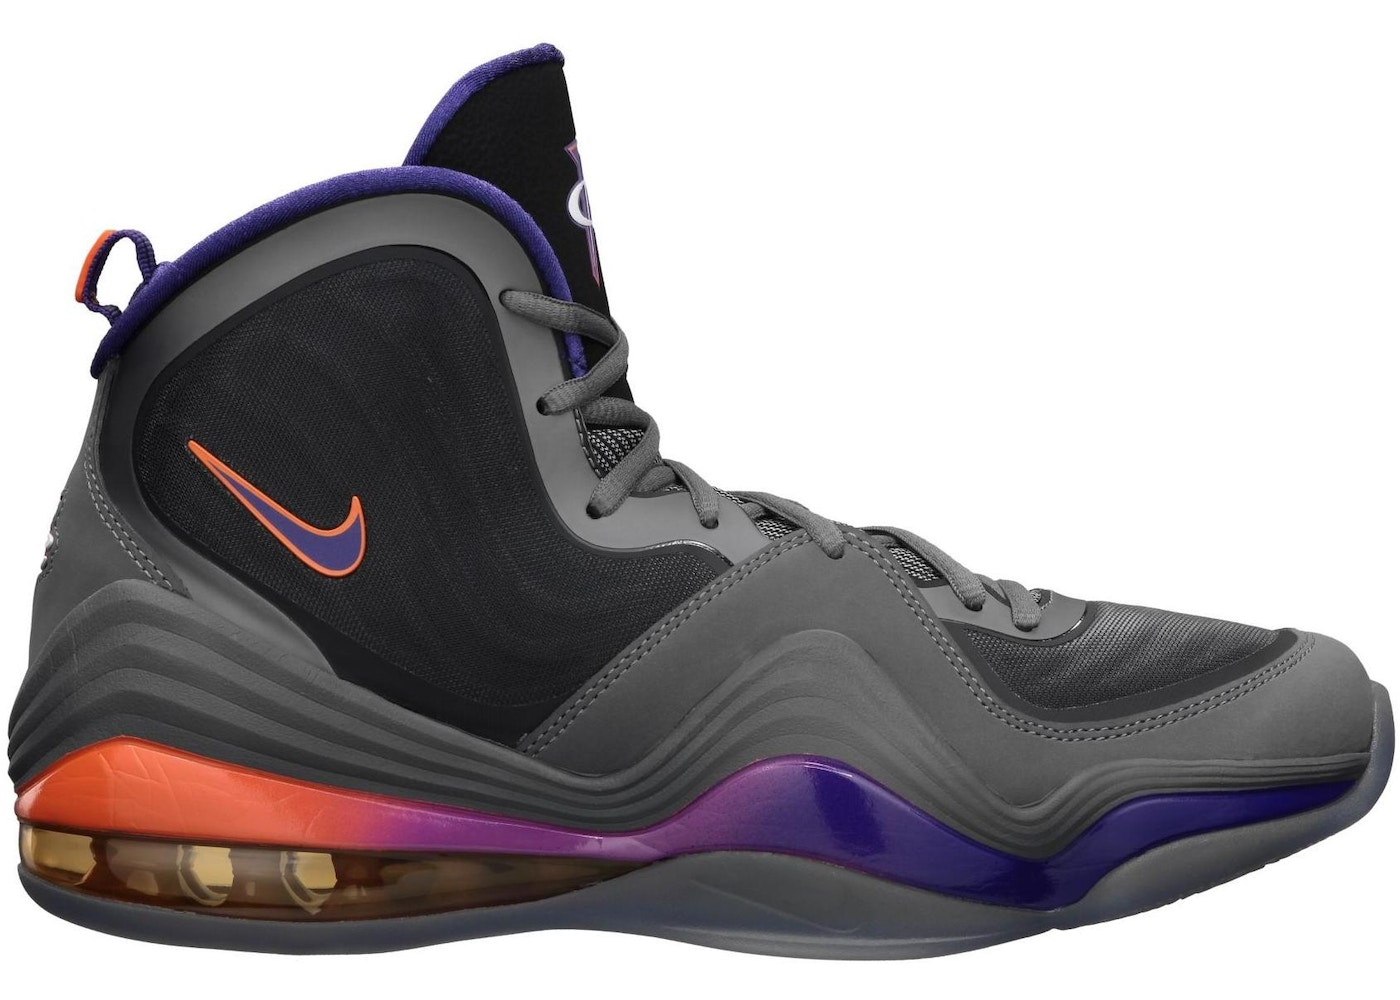 5e5b4a8b3d6 Buy Nike Basketball Penny Shoes   Deadstock Sneakers